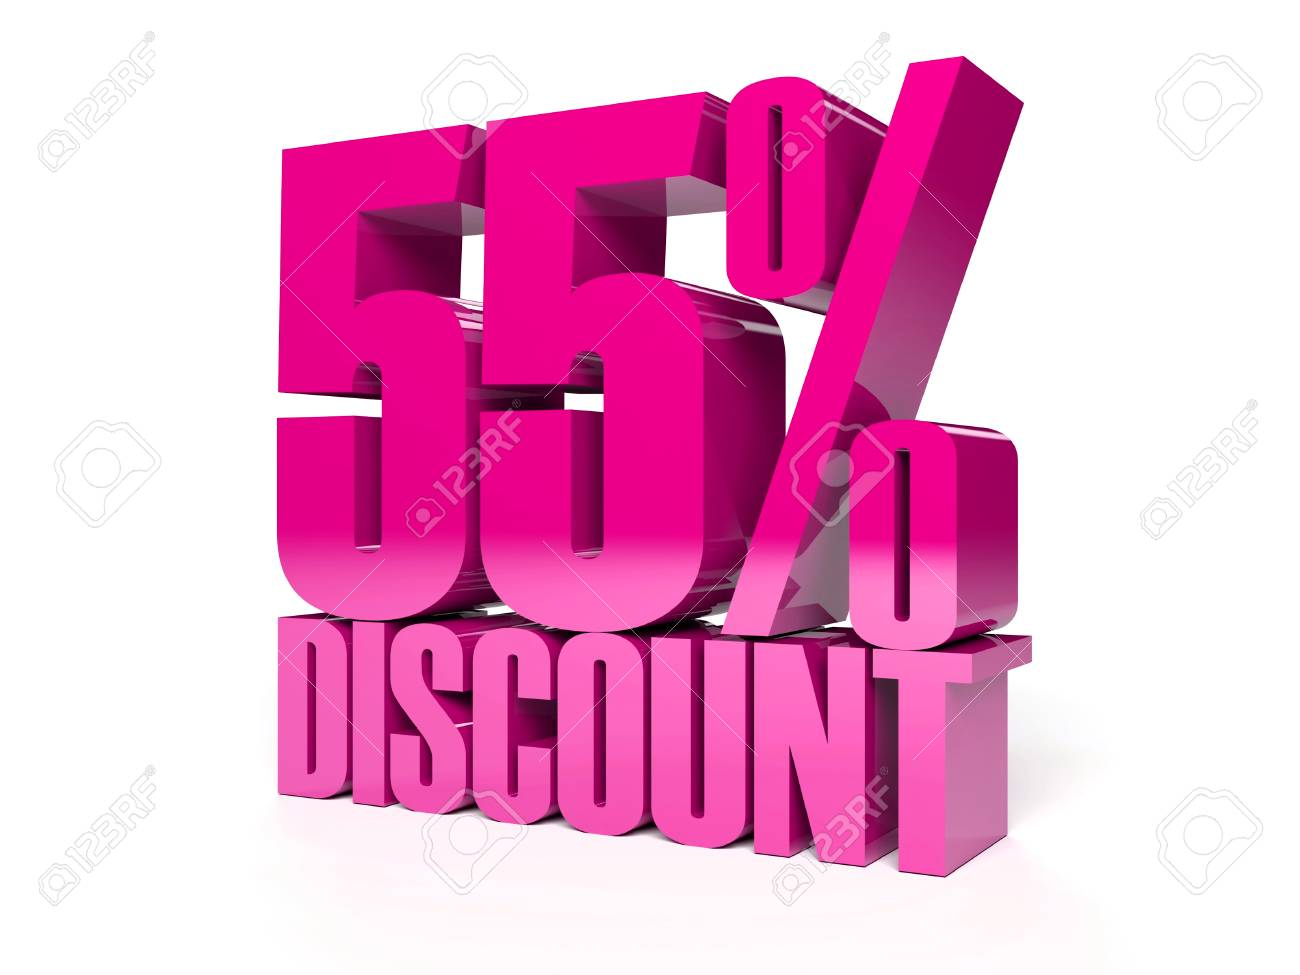 55 percent discount. Pink shiny text. Concept 3D illustration. Stock Photo - 22491882